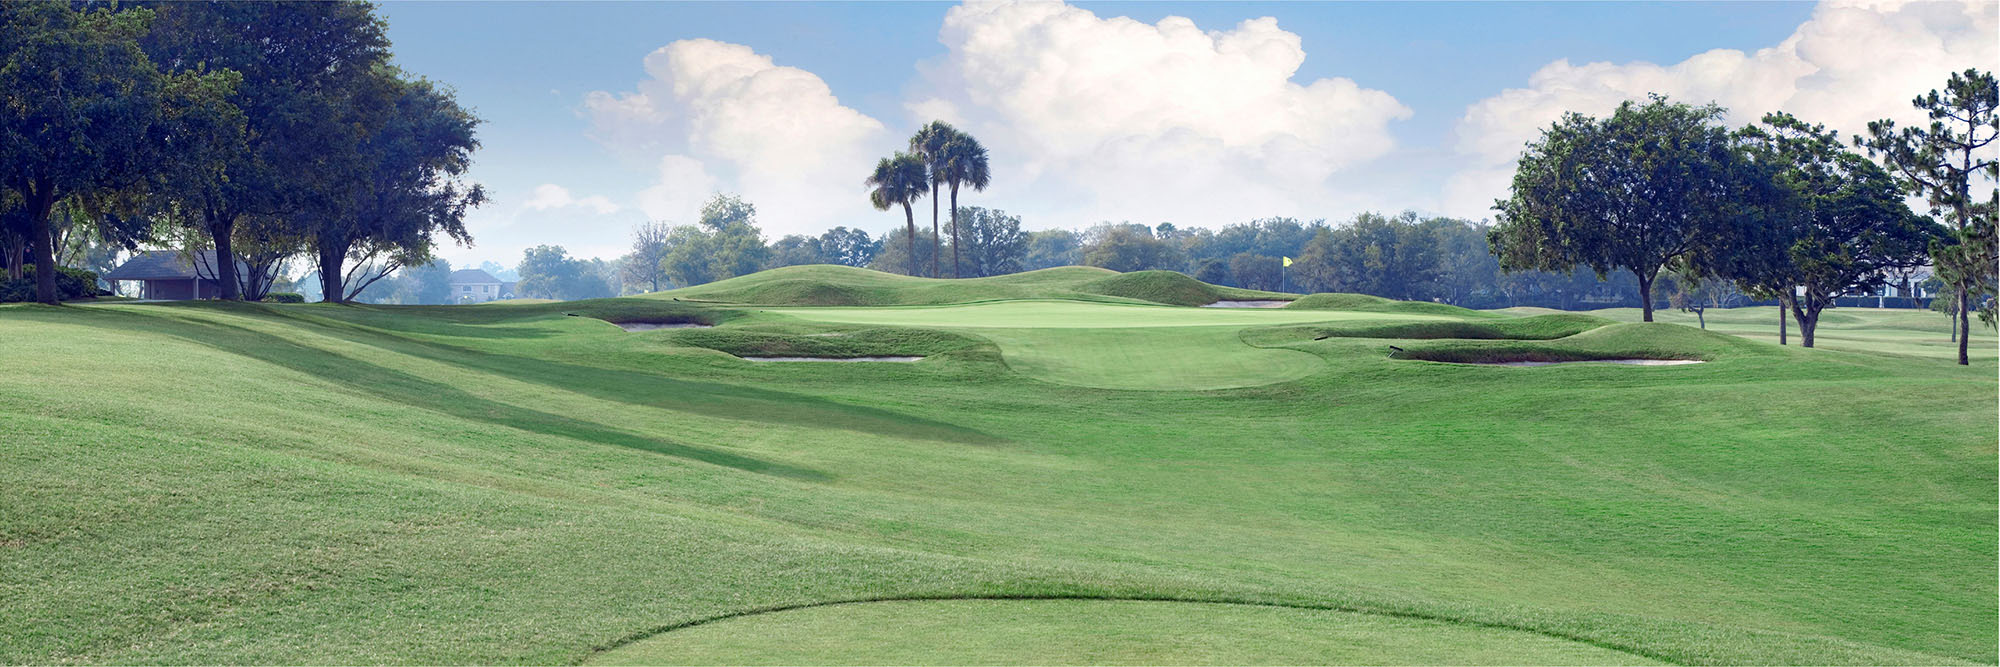 Golf Course Image - Bay Hill No. 7